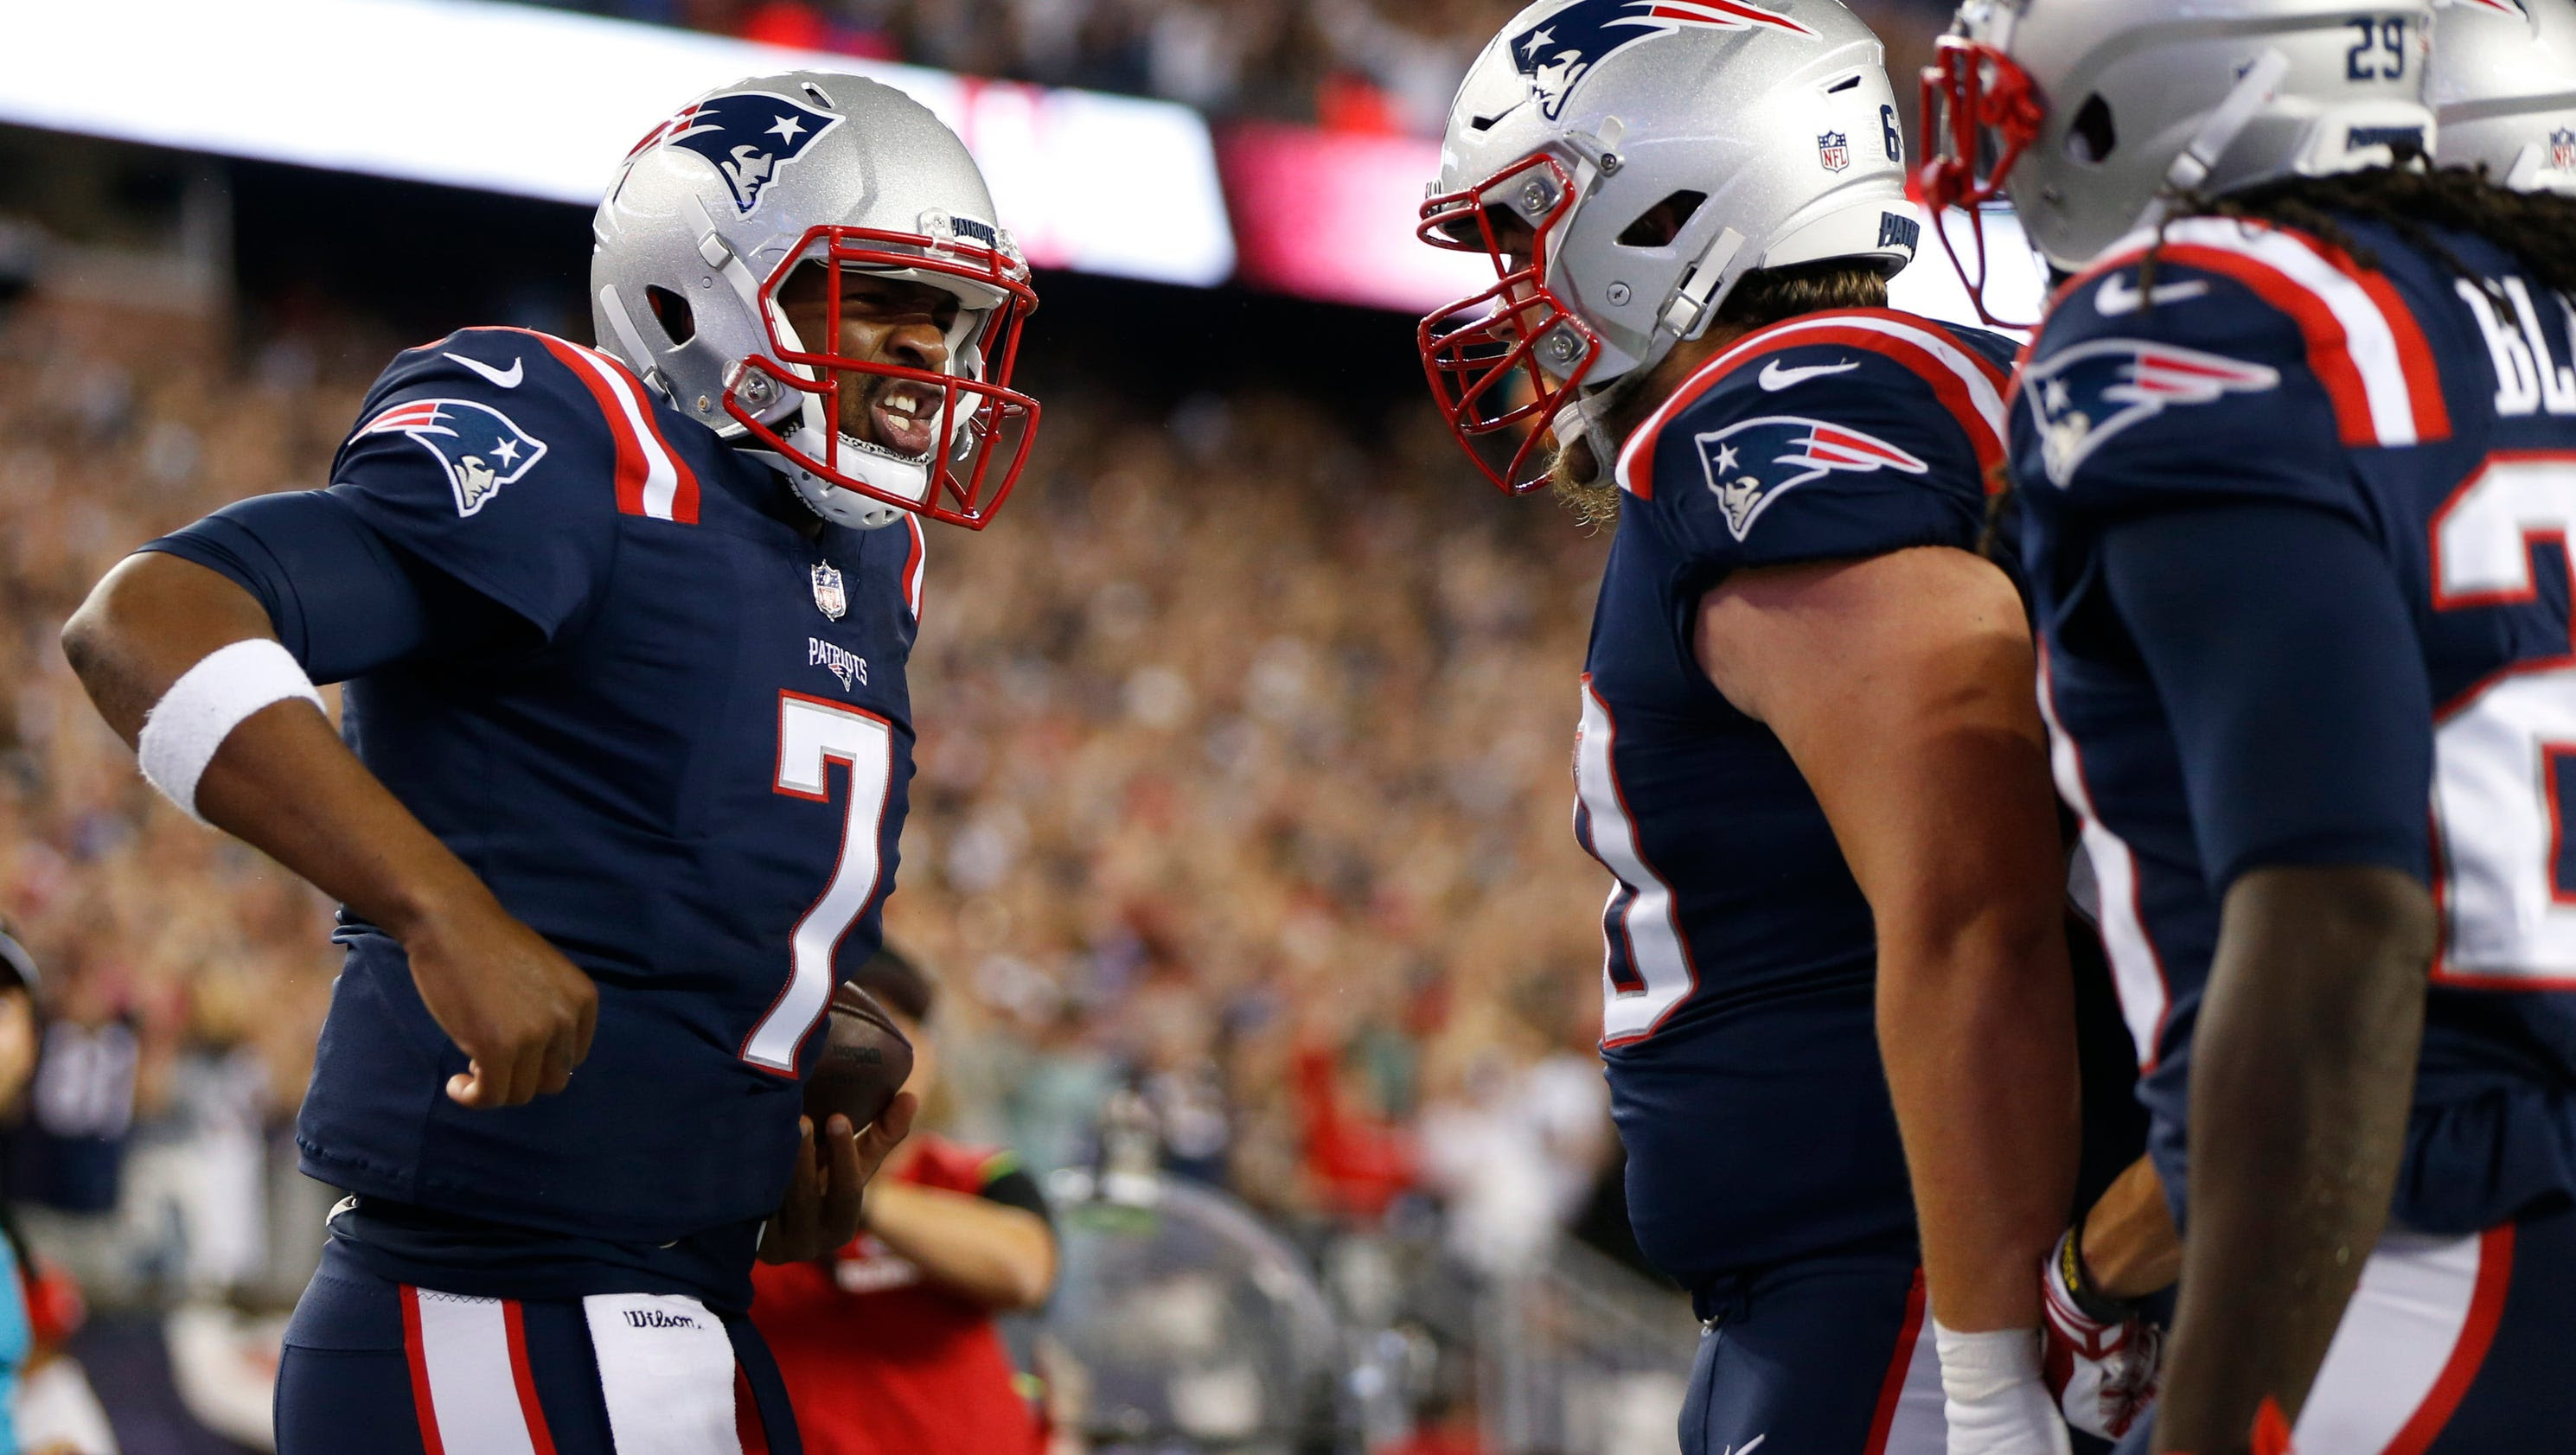 Jacoby Brissett wasnt perfect, but he delivered for Patriots in starting debut